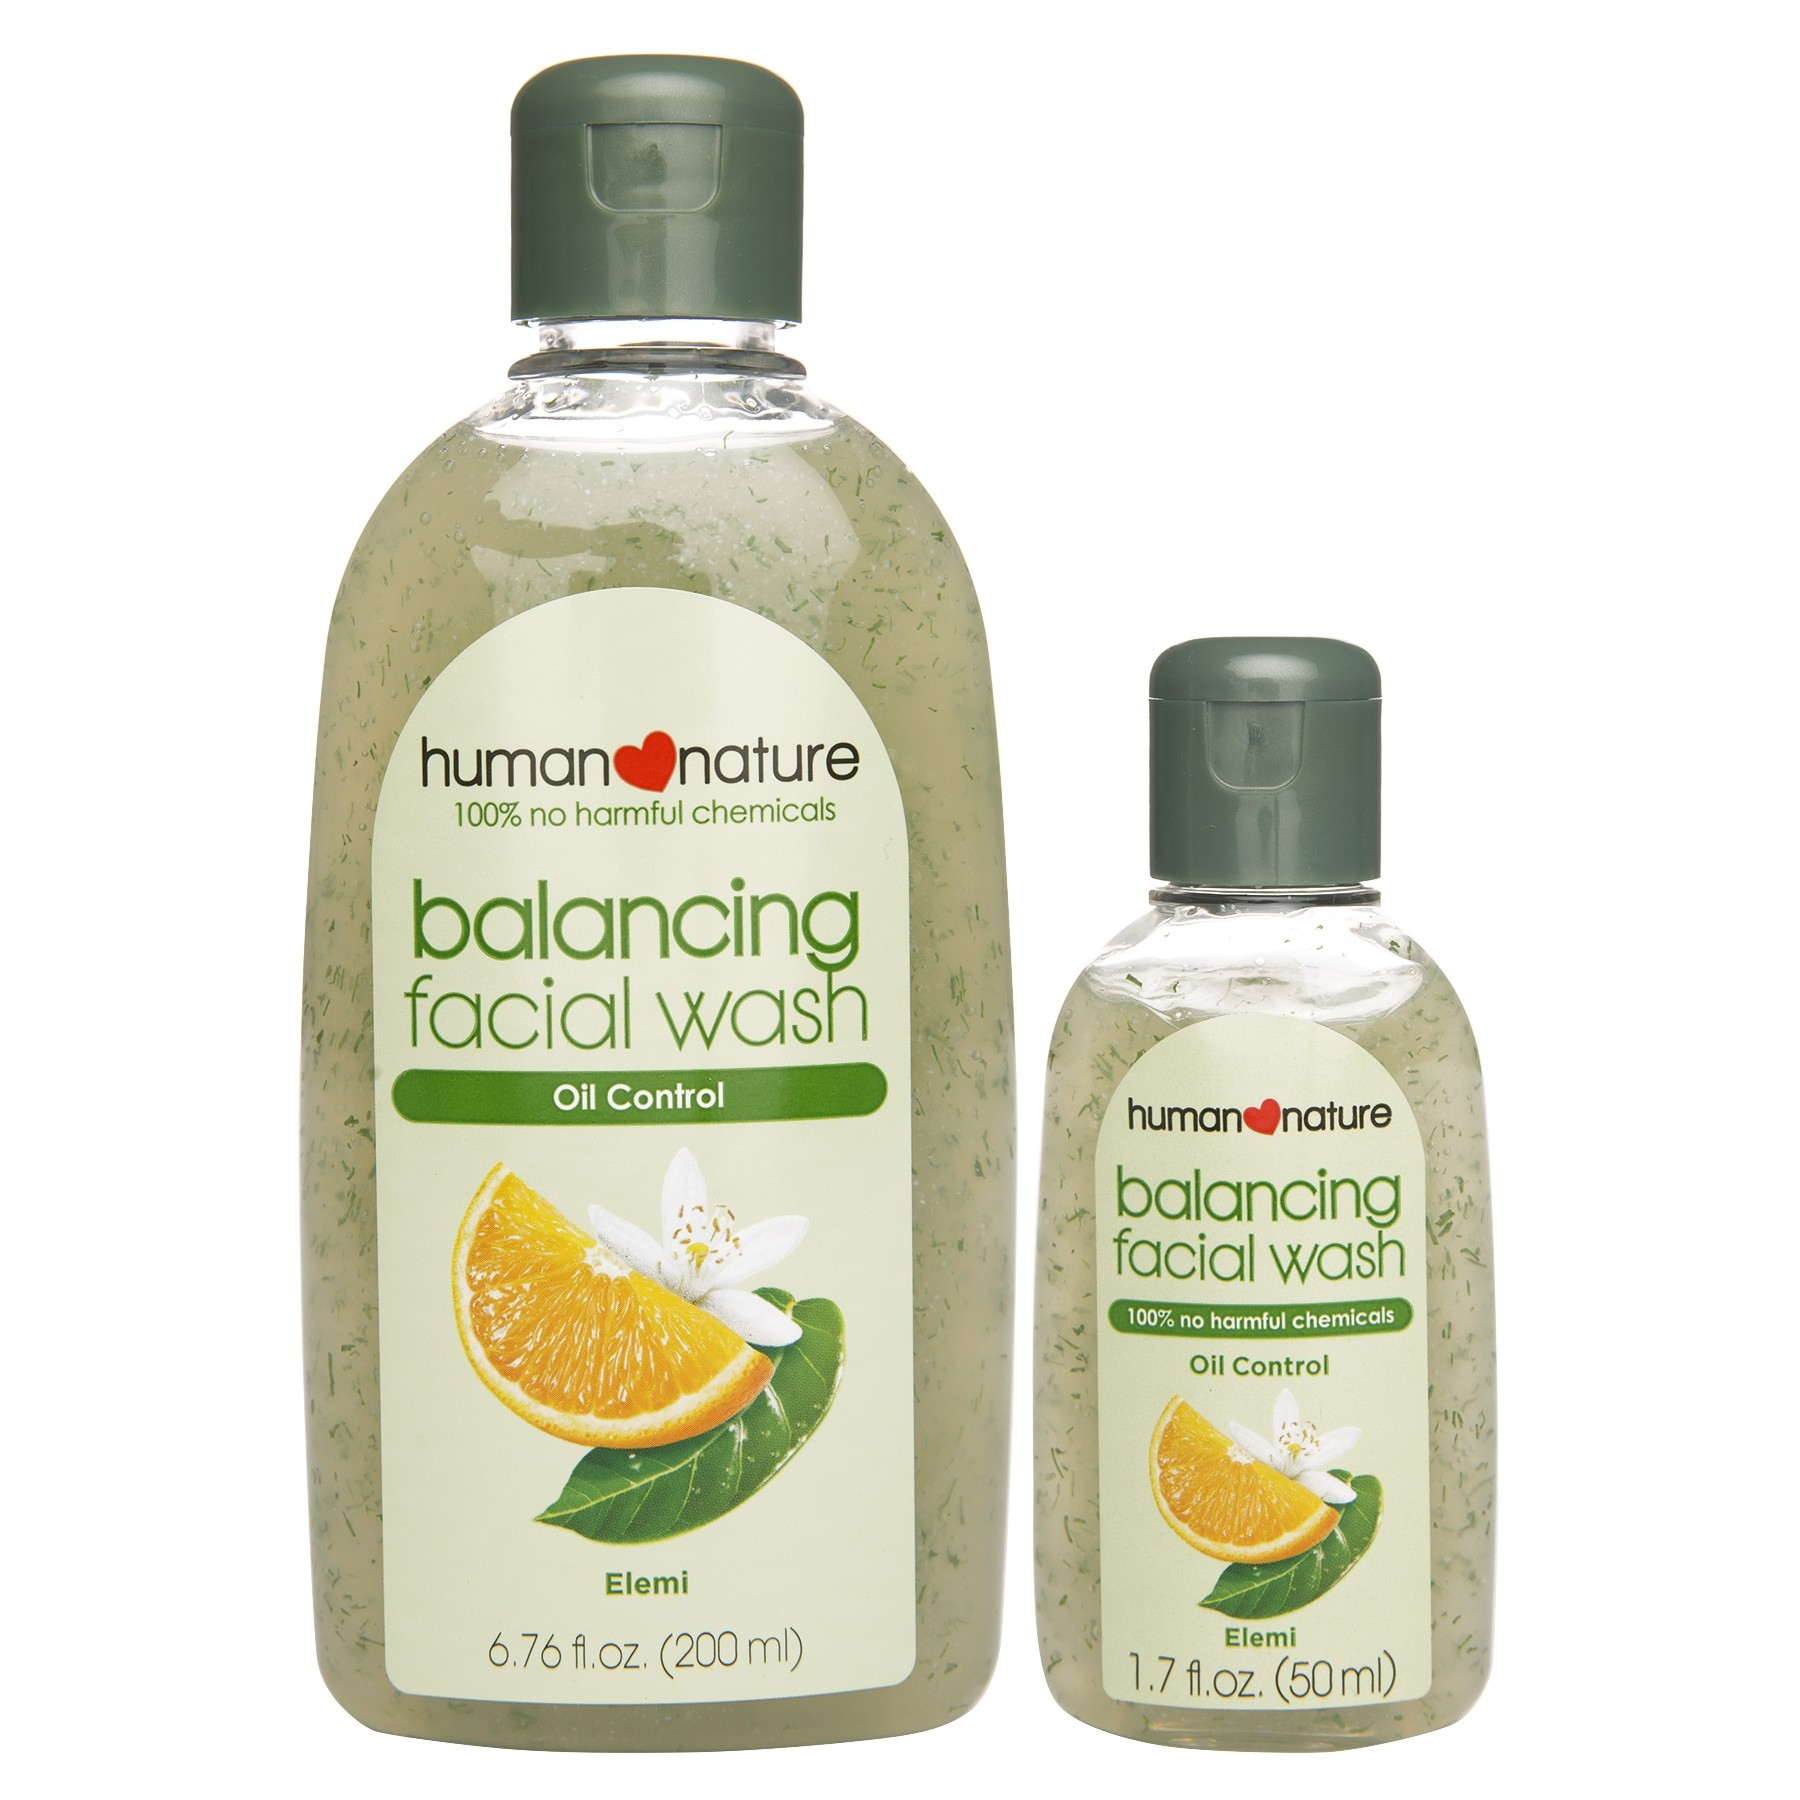 Human Heart Nature Balancing Facial Wash TheMhayonnaise